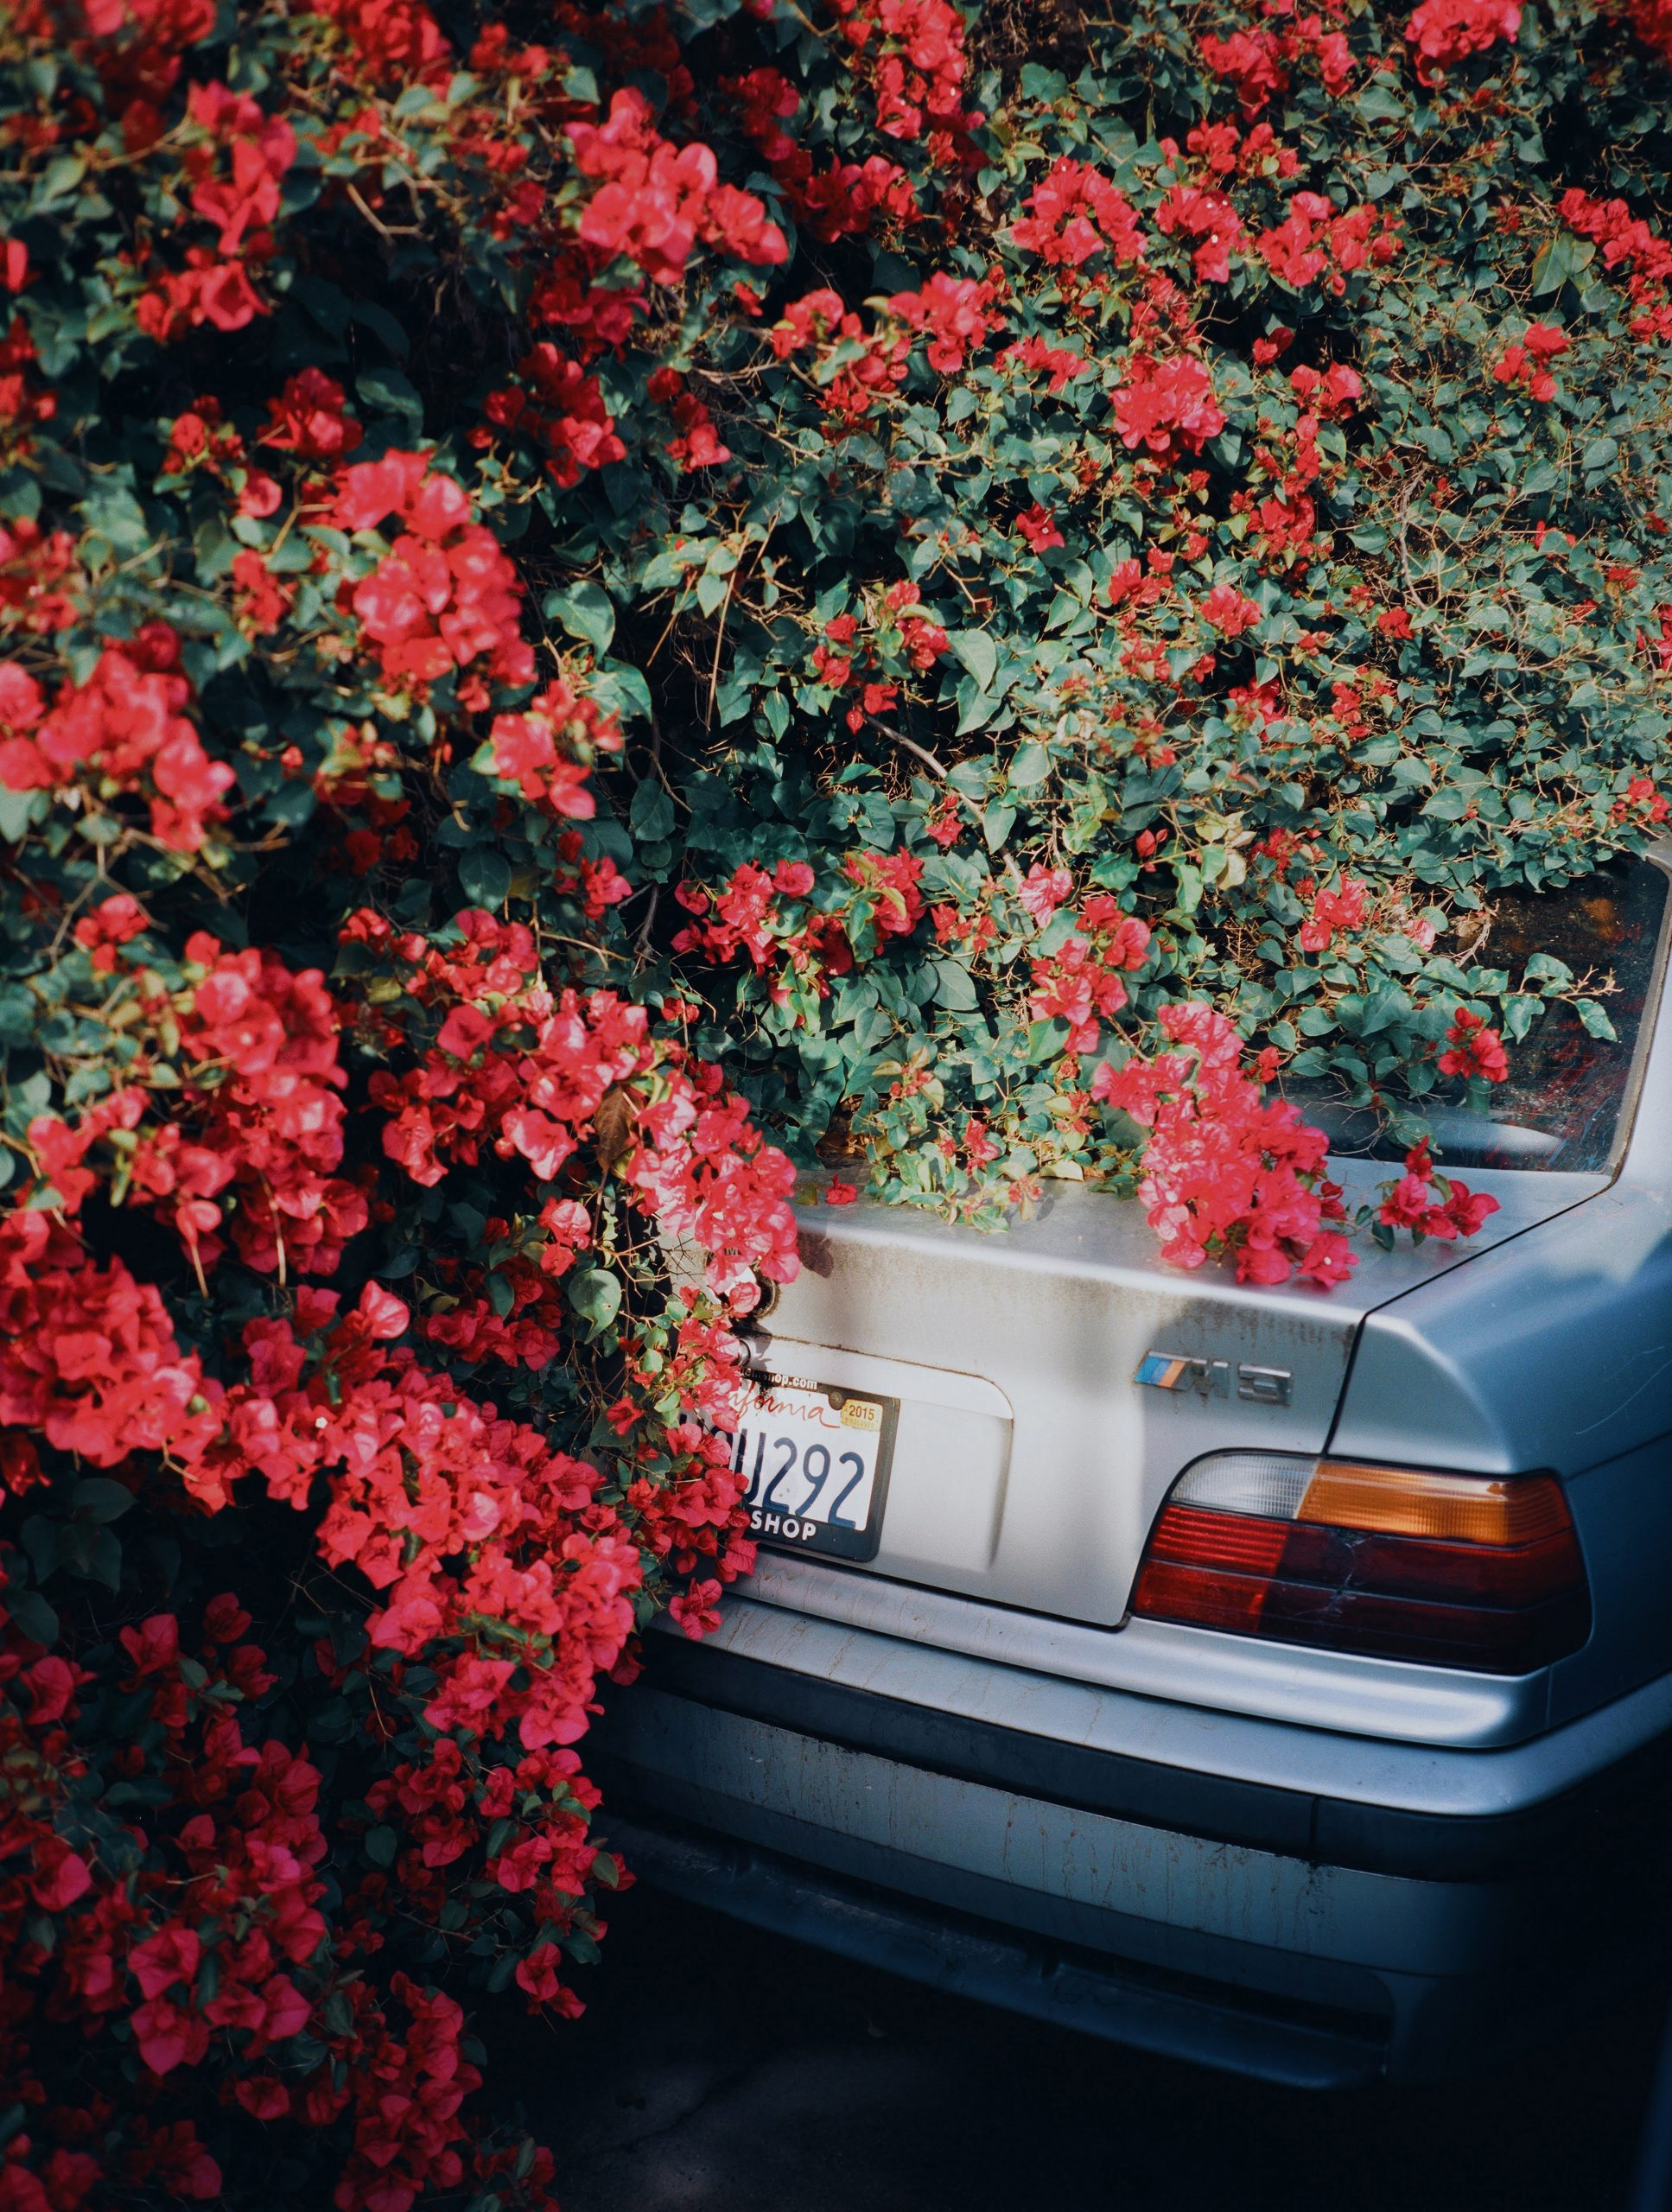 Color street photography by Pia Riverola, car and flowers Los Angeles